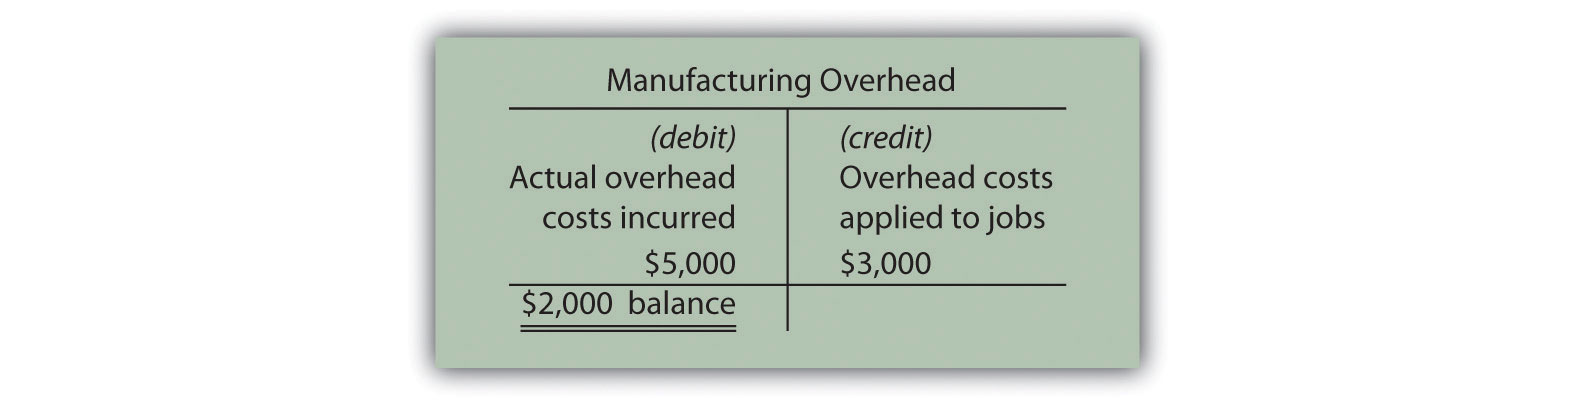 Assigning Manufacturing Overhead Costs to Jobs | Accounting